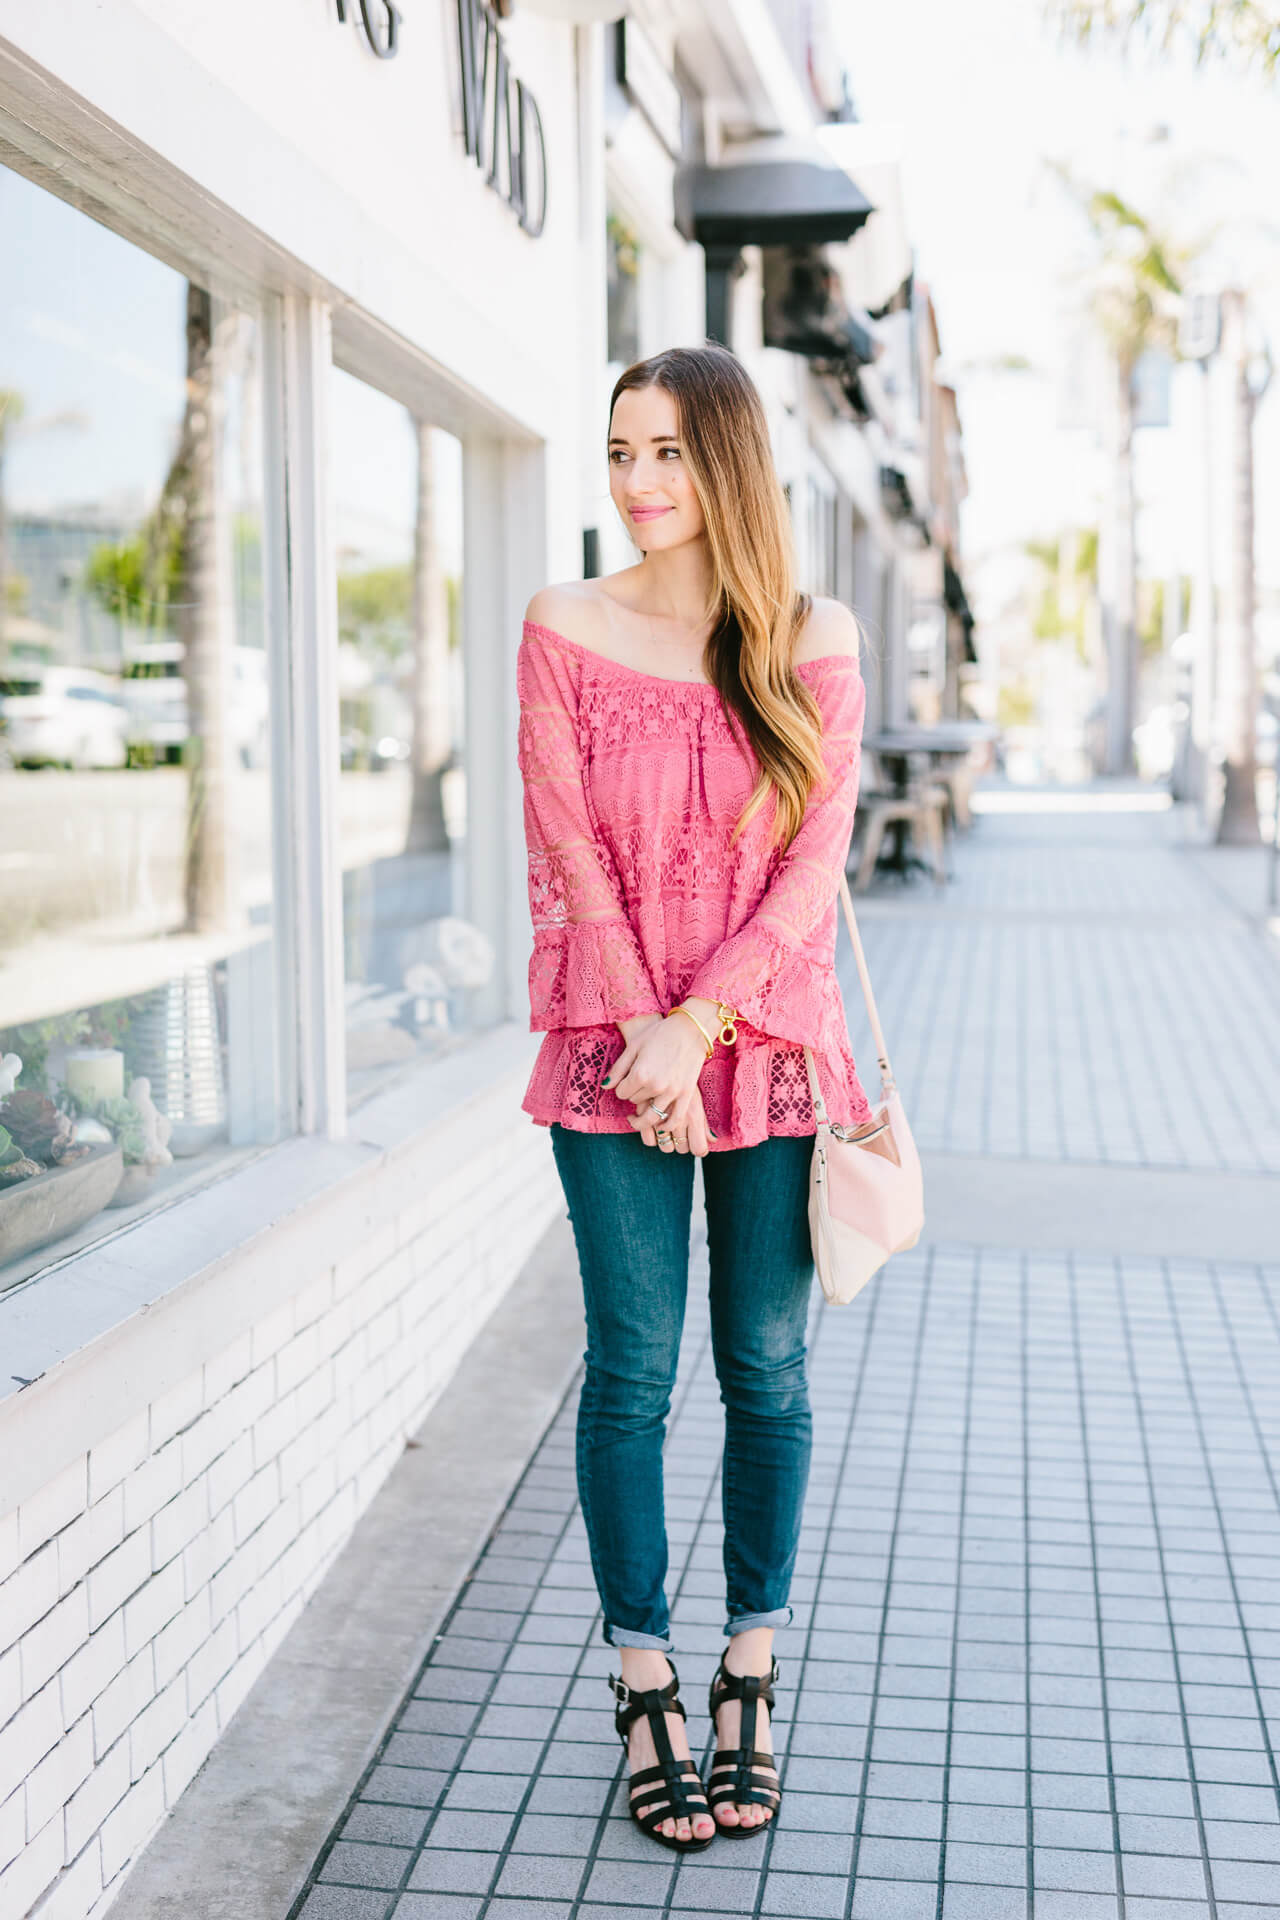 styling a pink lace blouse with jeans  - M Loves M @marmar